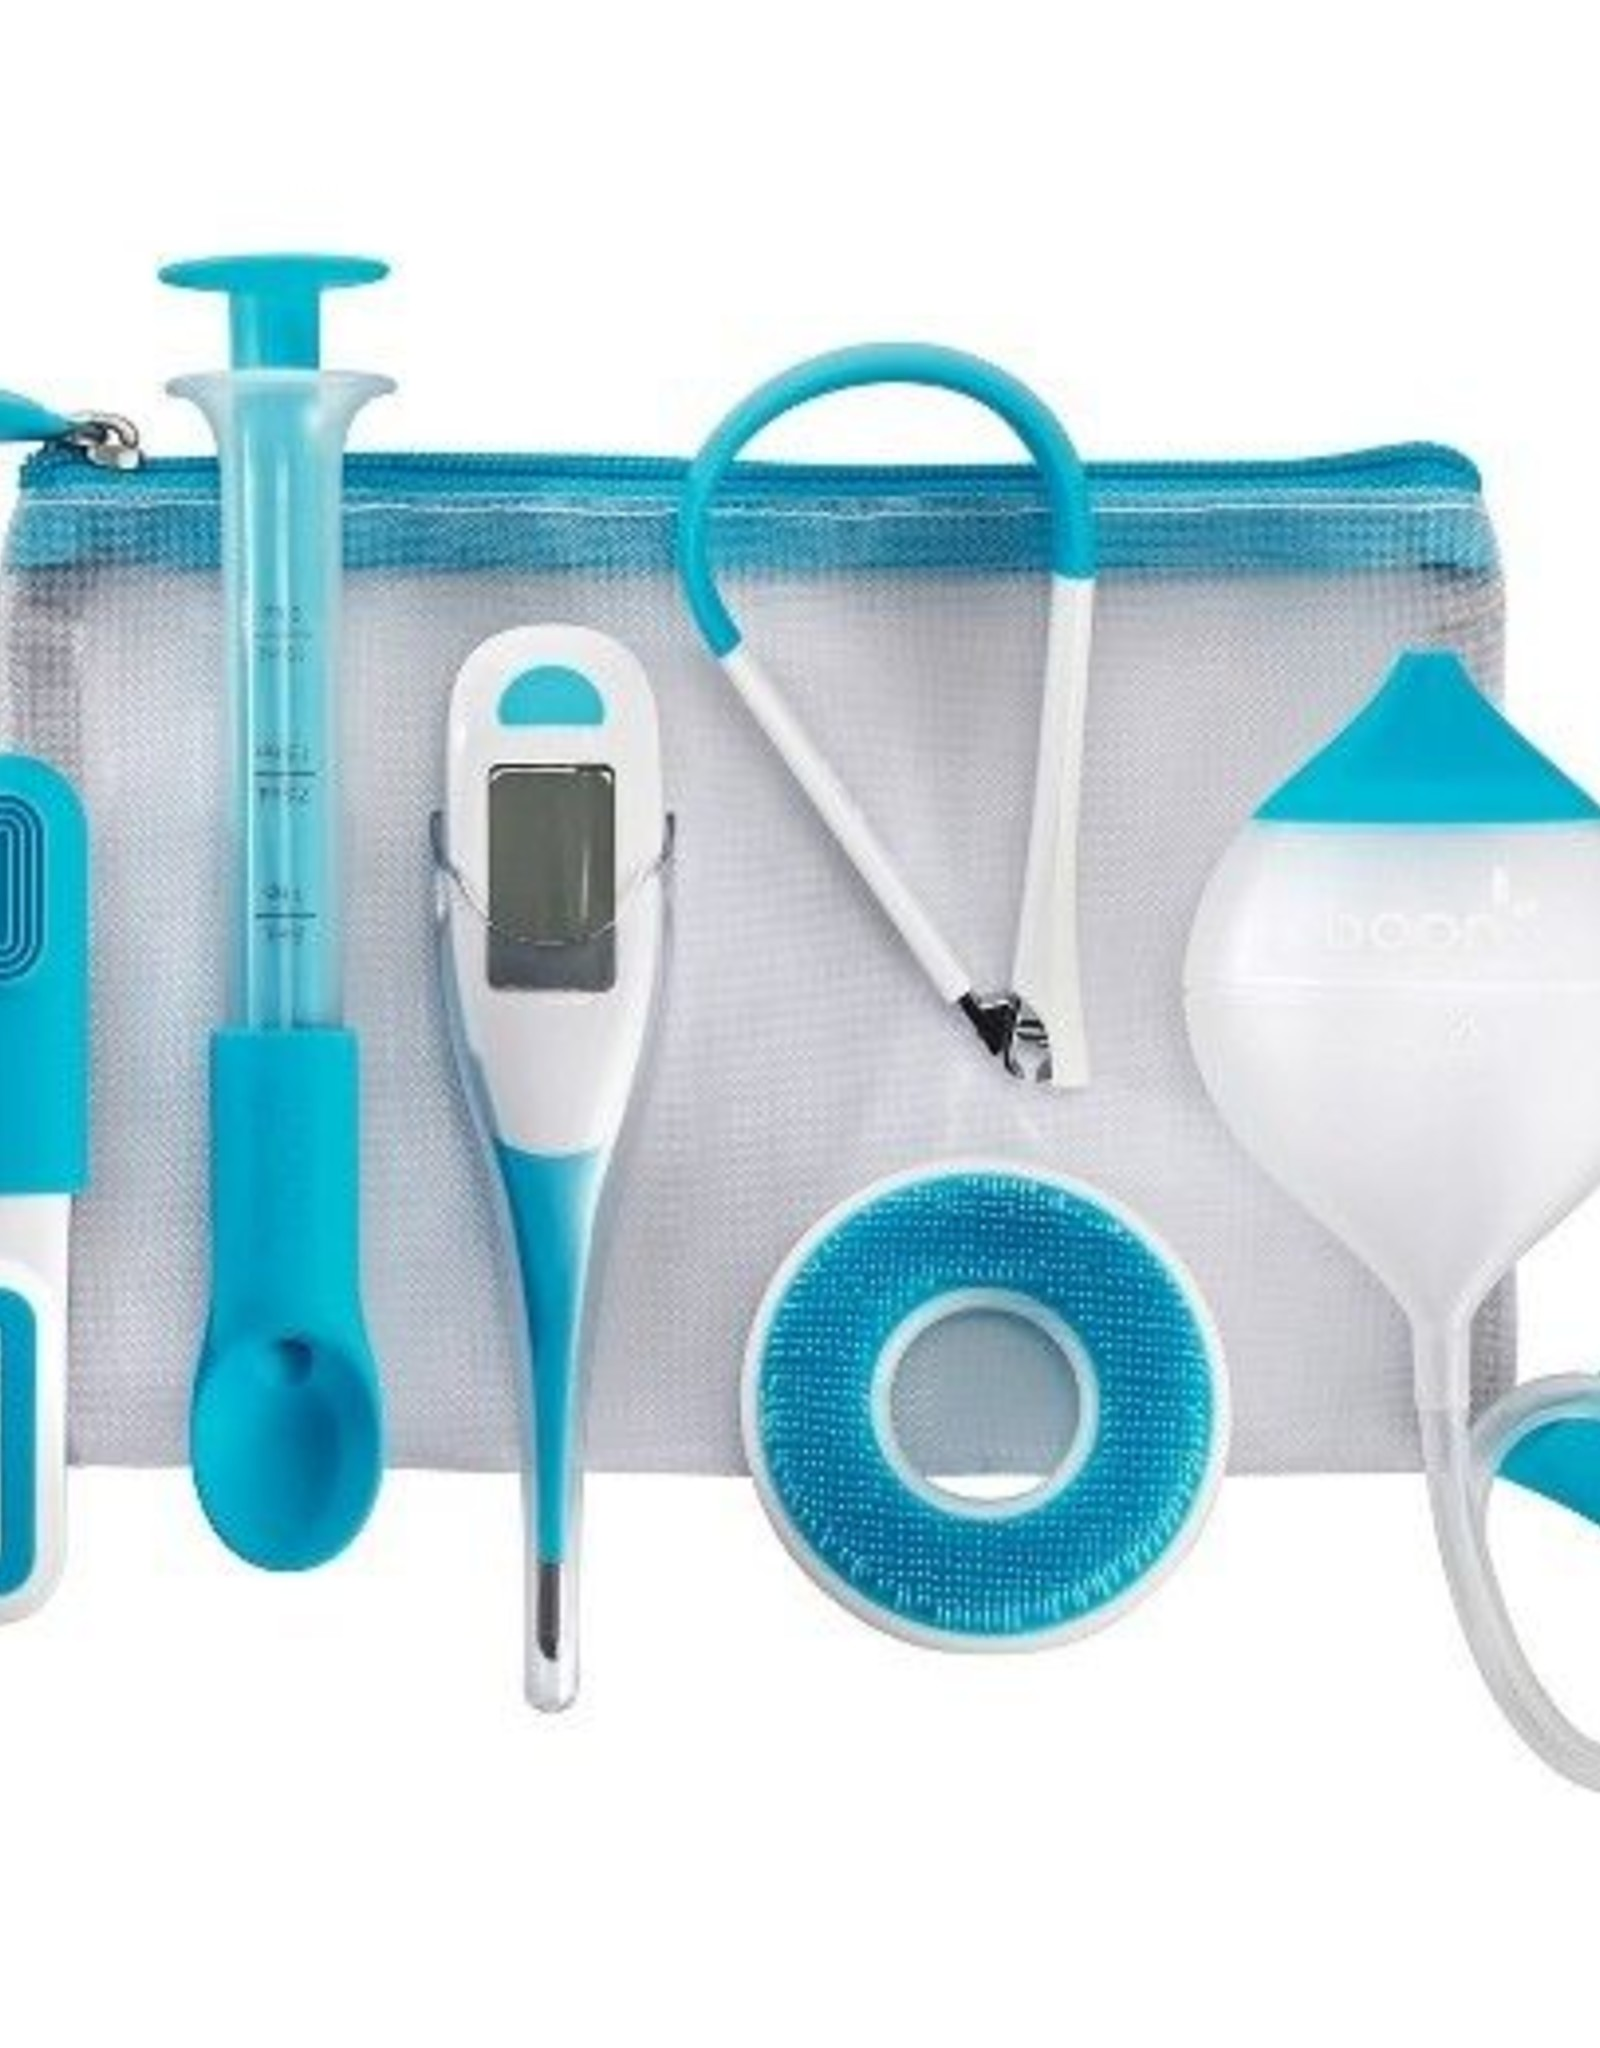 Boon Boon Care Health & Grooming Kit